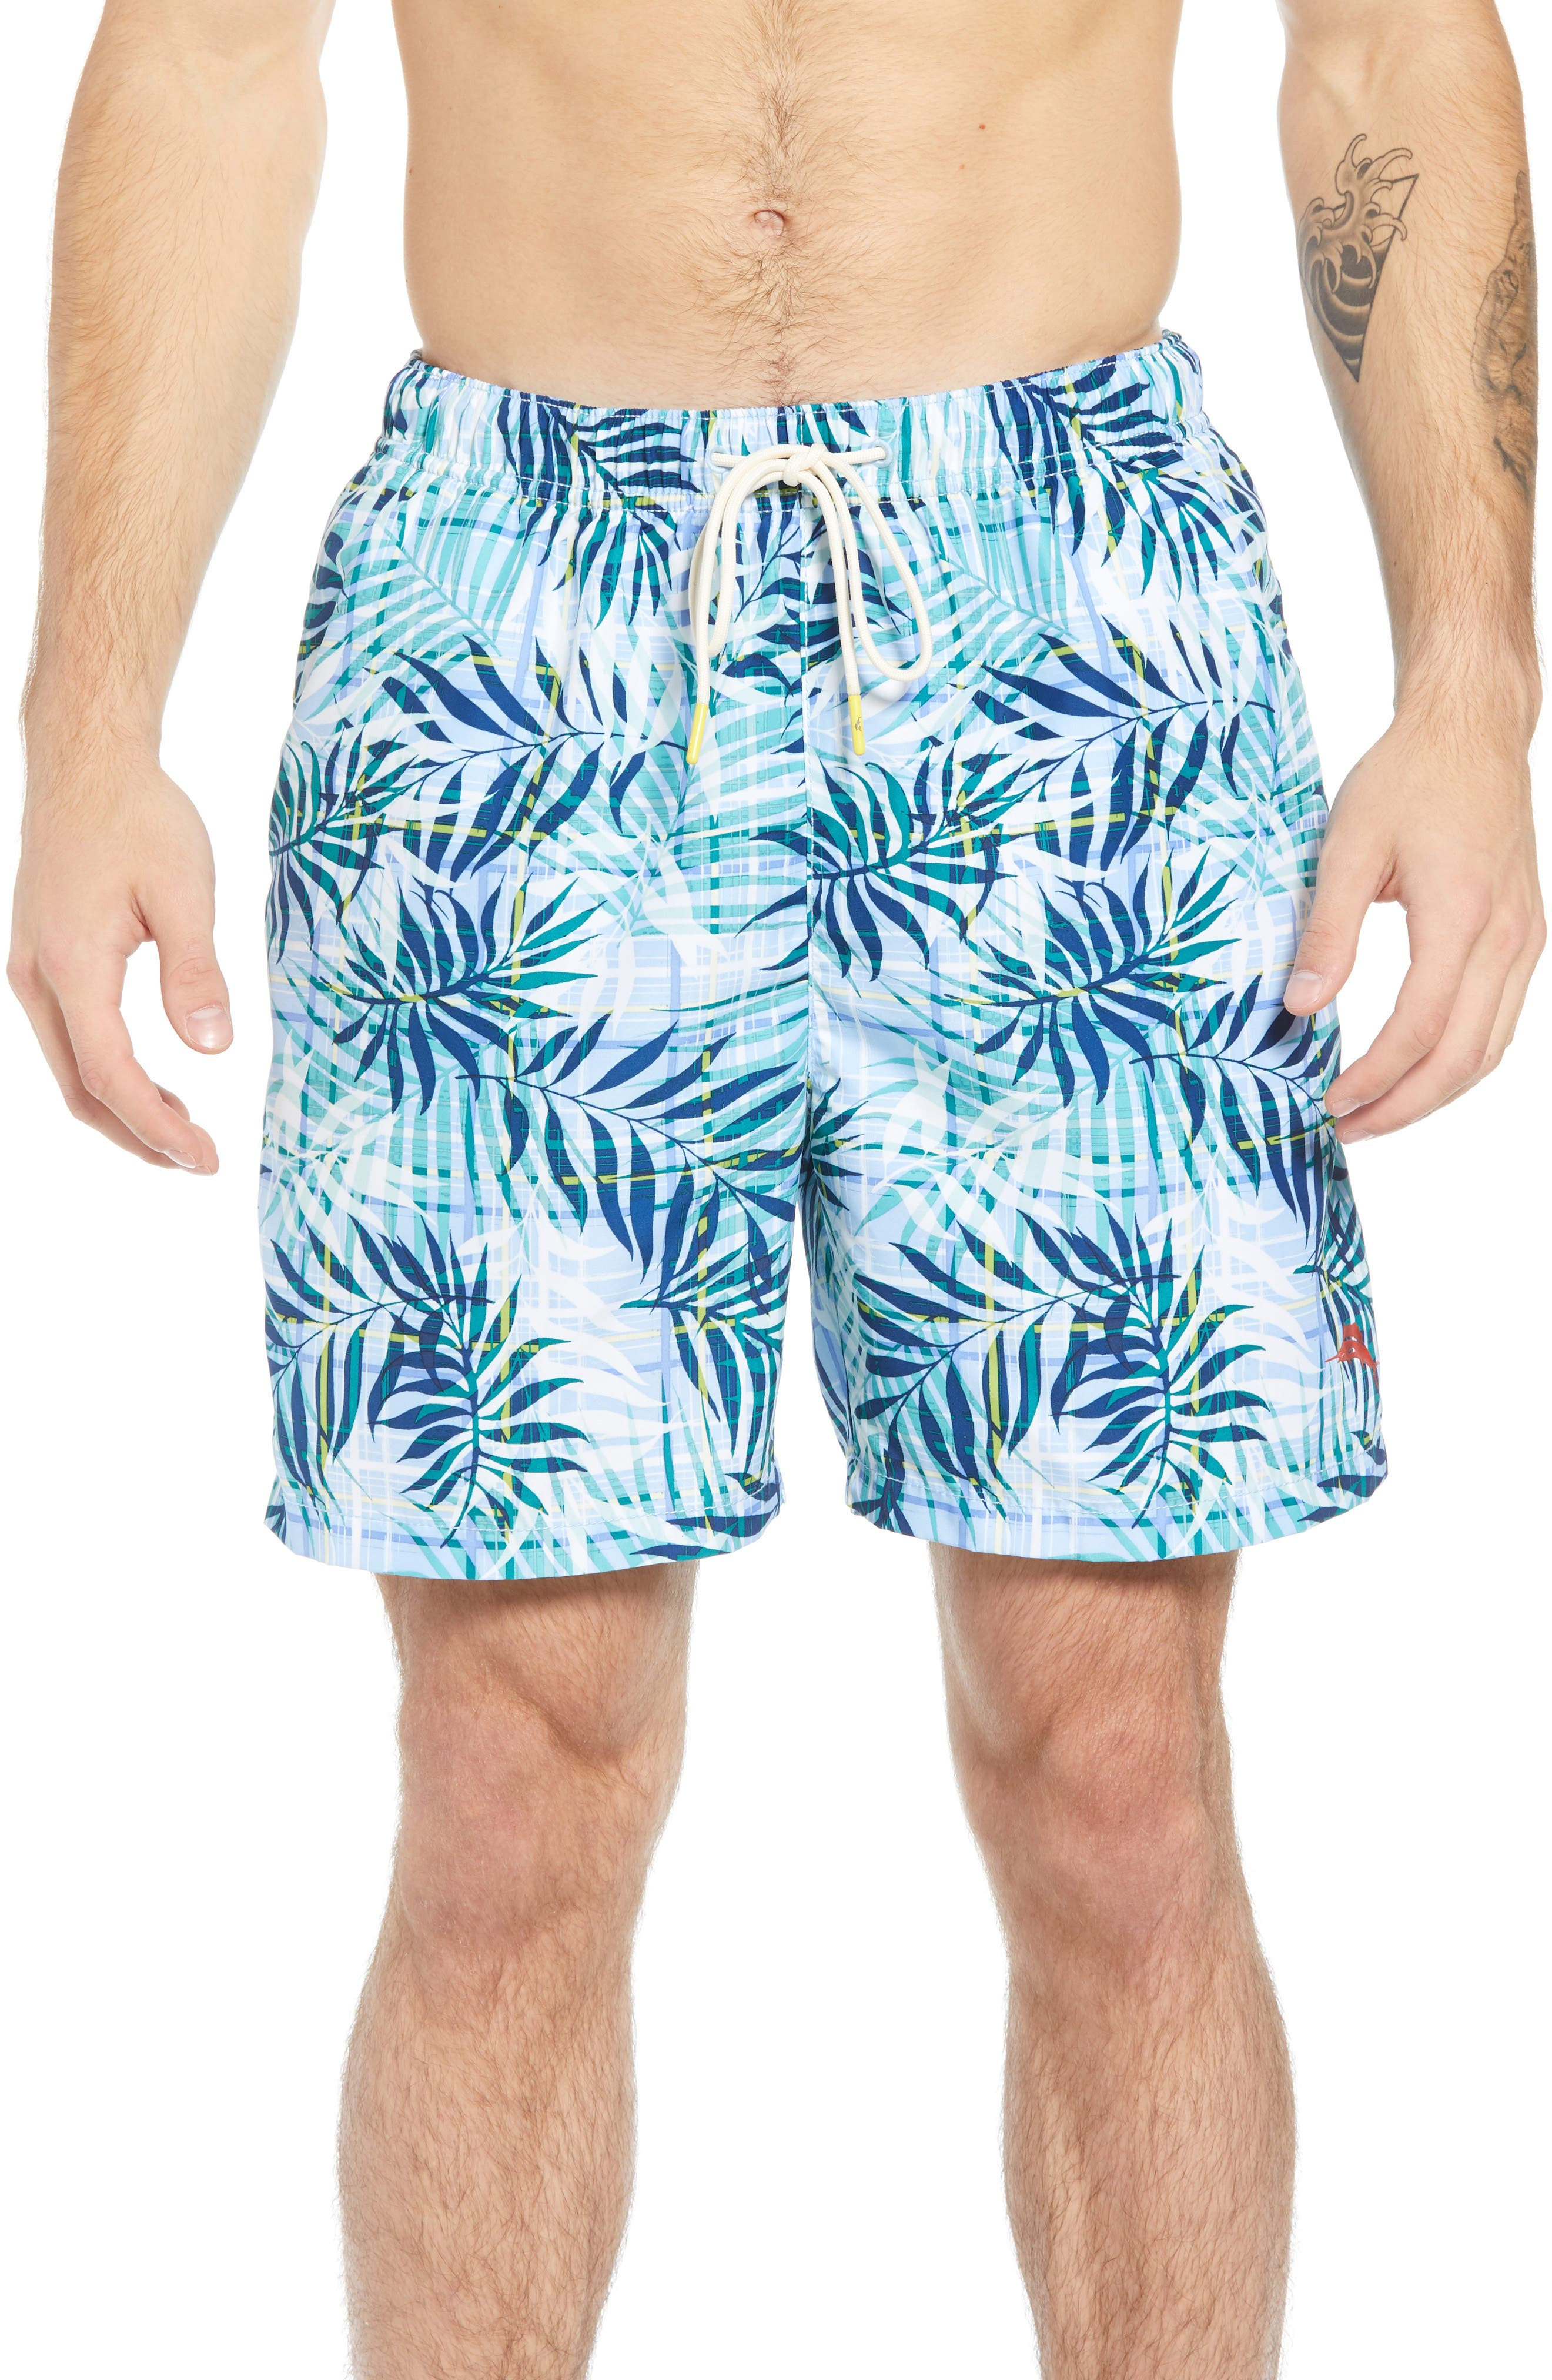 Naples Terraba Swim Trunks,                         Main,                         color, AQUA ICE